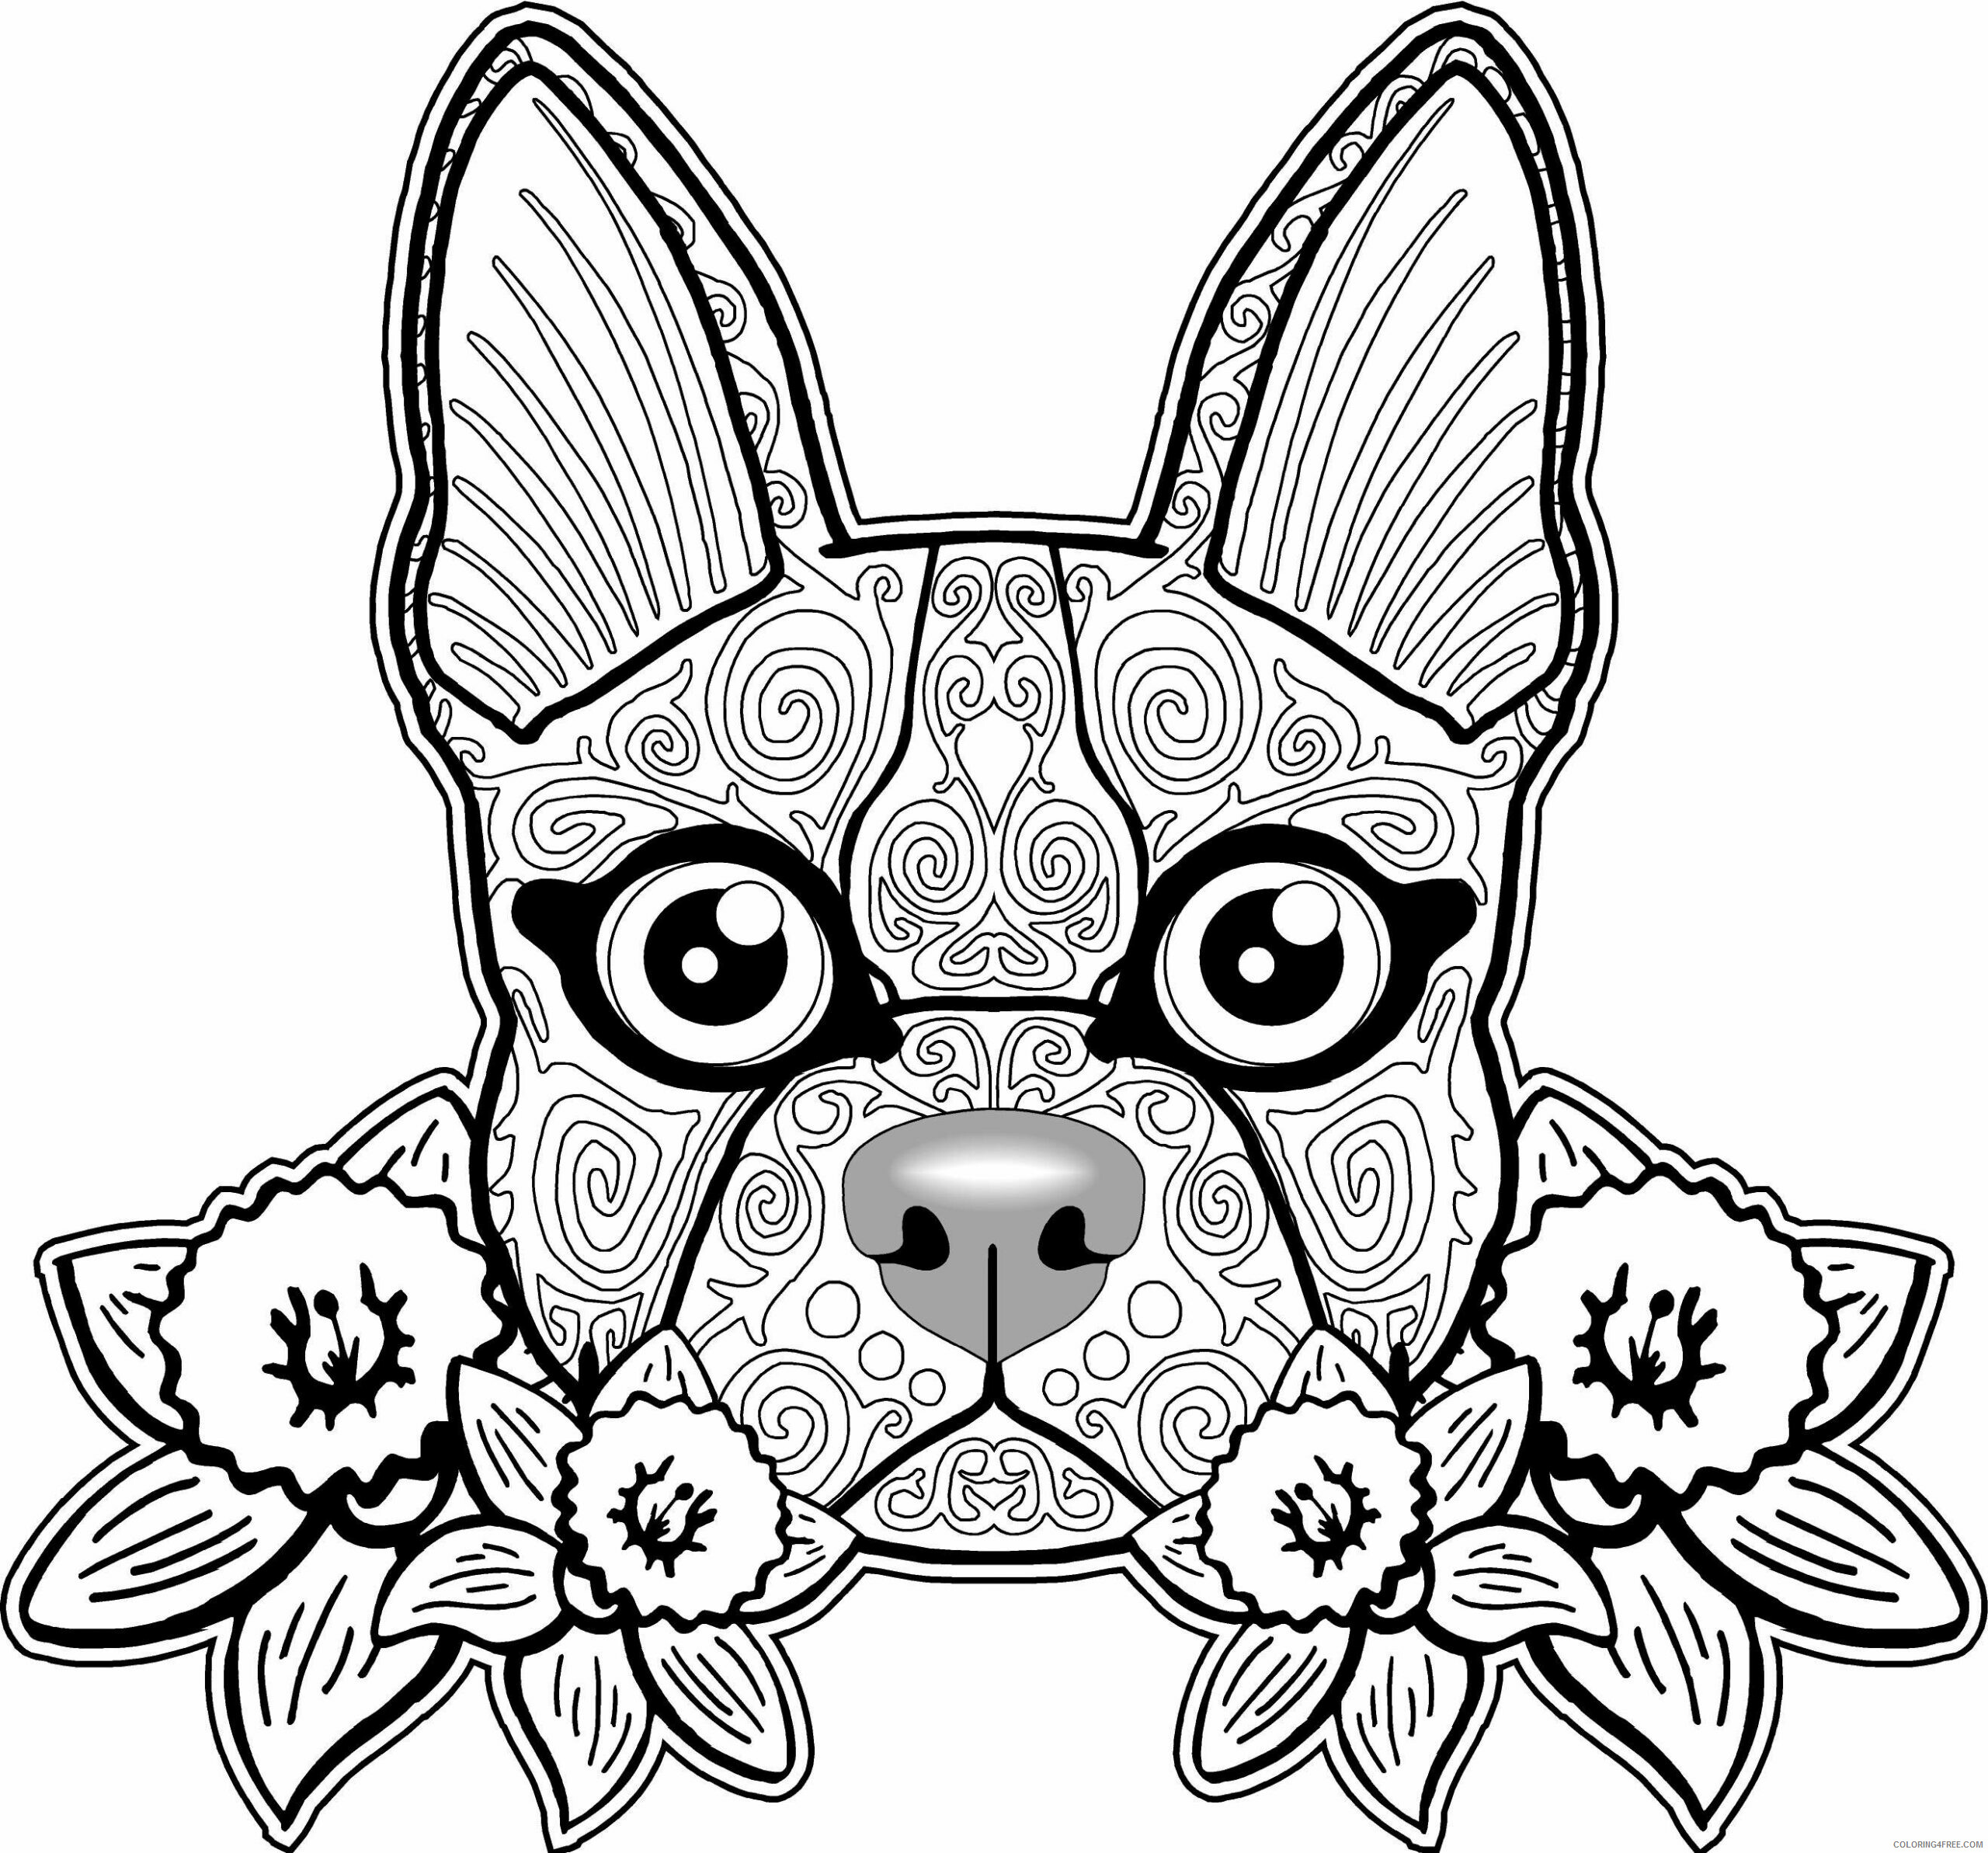 Adult Dog Coloring Pages Adult ZenDog Printable 2020 223 Coloring4free